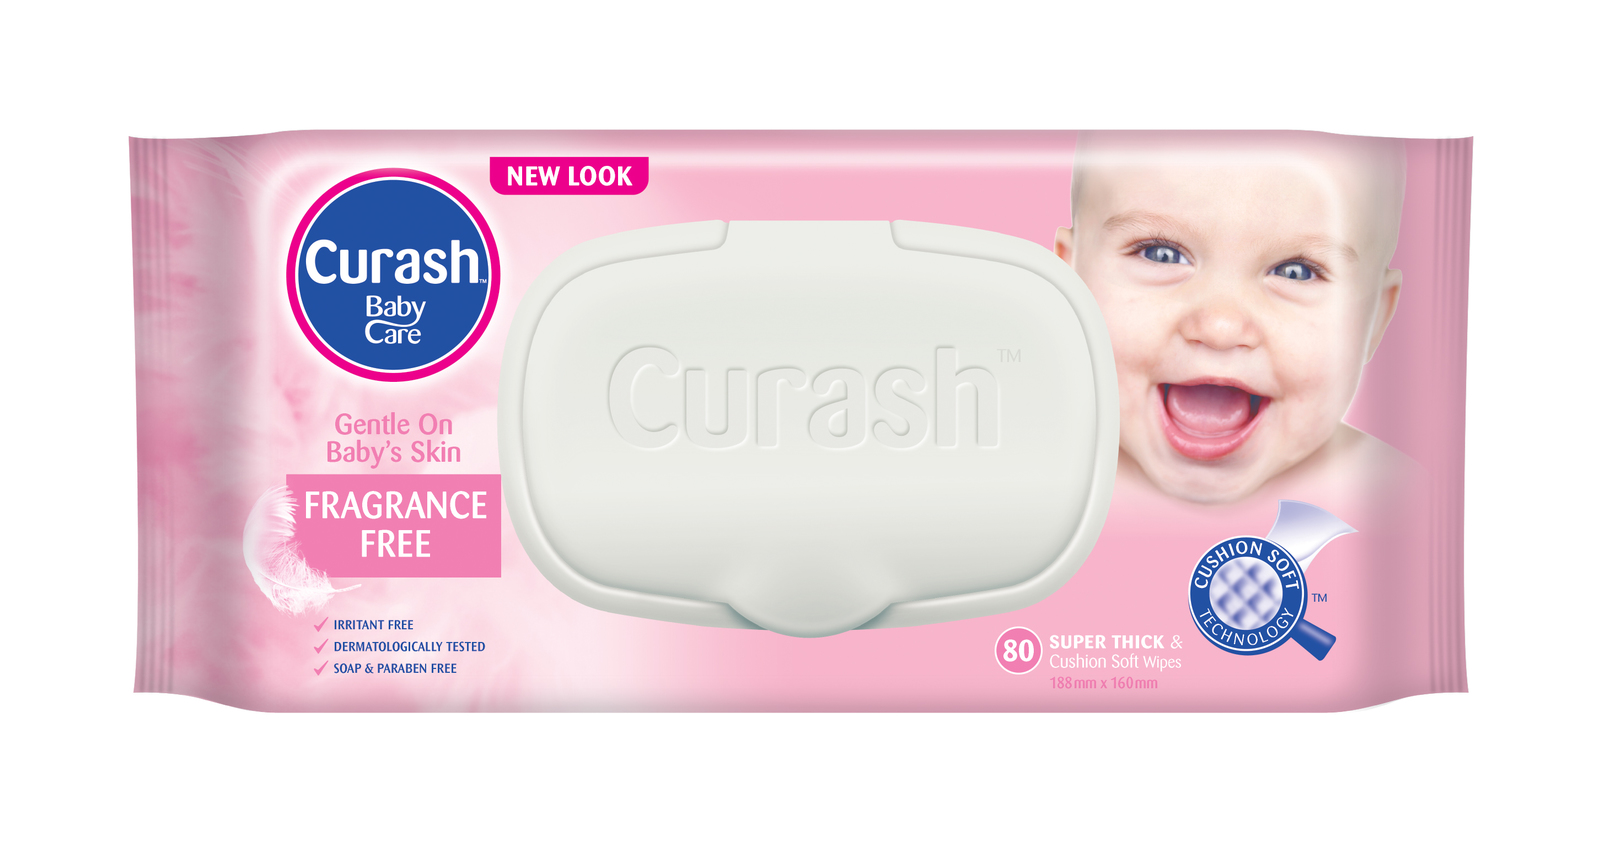 Curash Fragrance Free Wipes 80's image